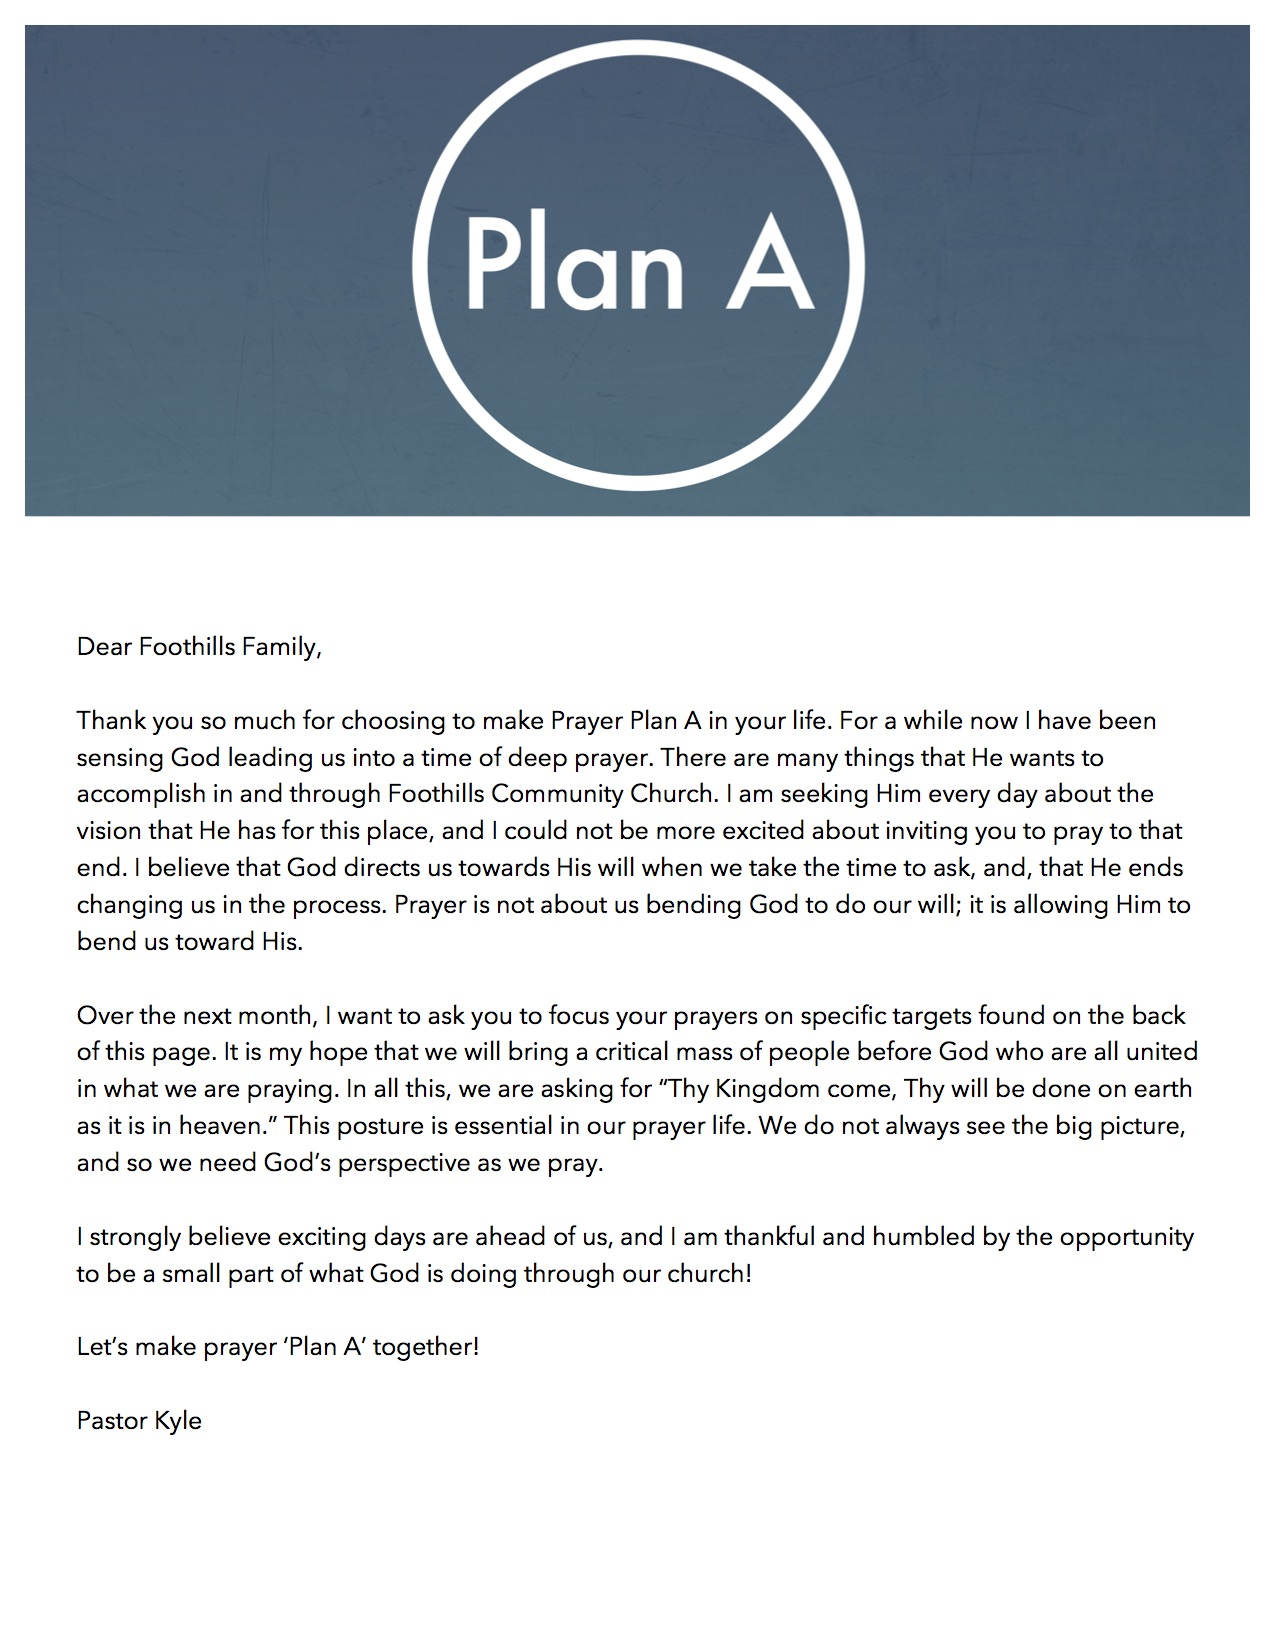 Prayer Focus - Plan A pg 1.jpg